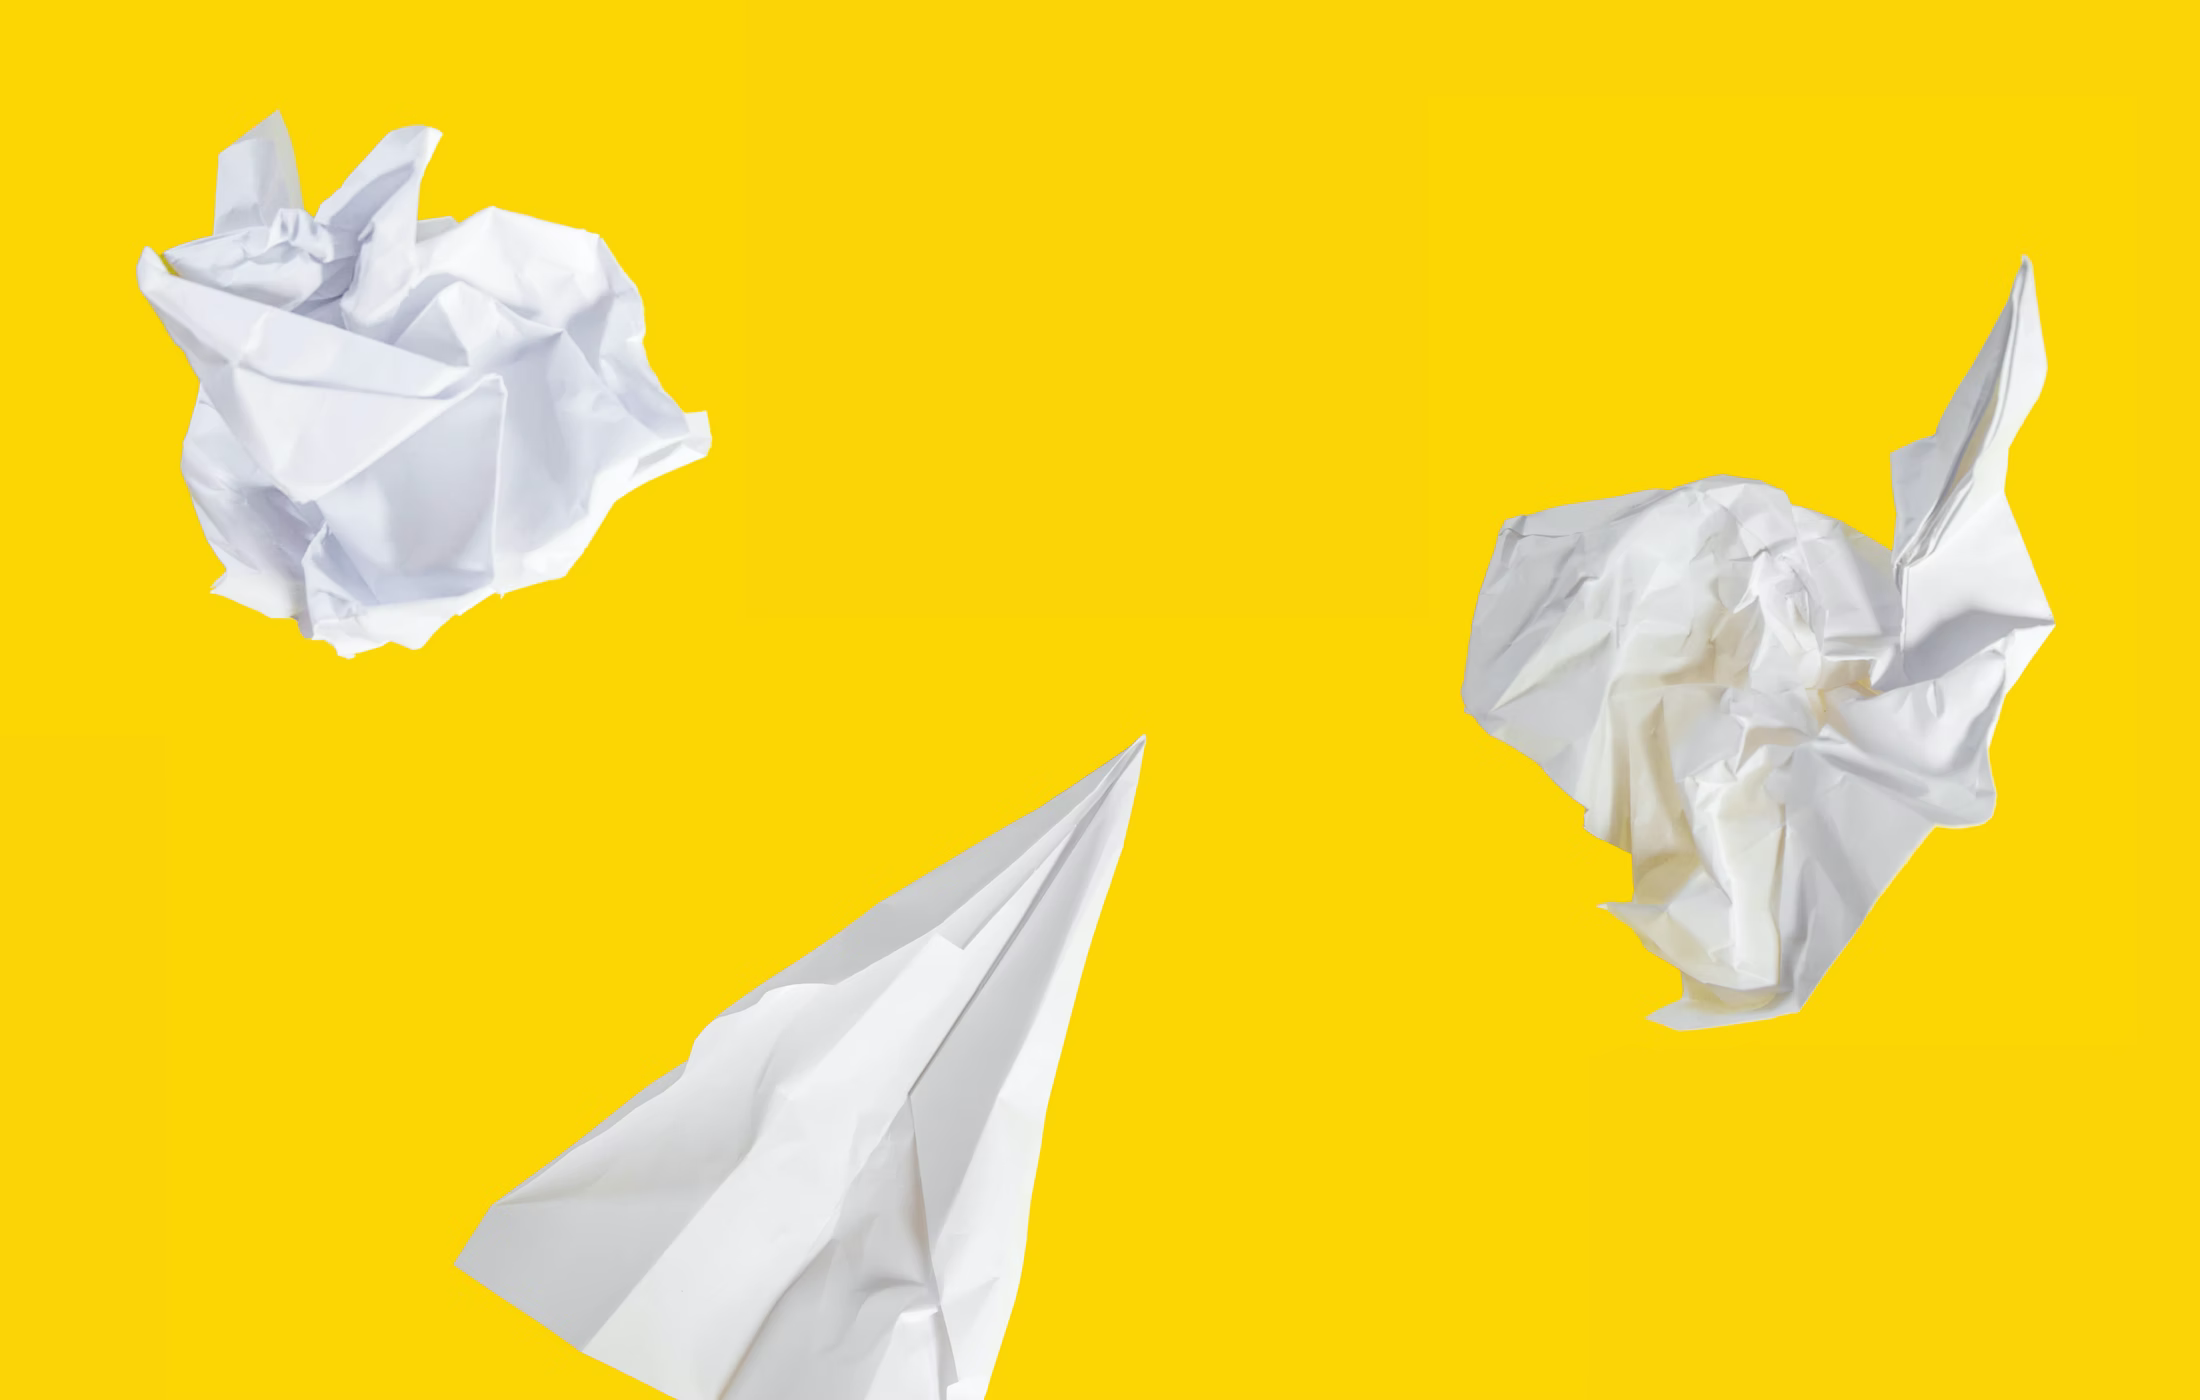 white paper airplane on yellow background